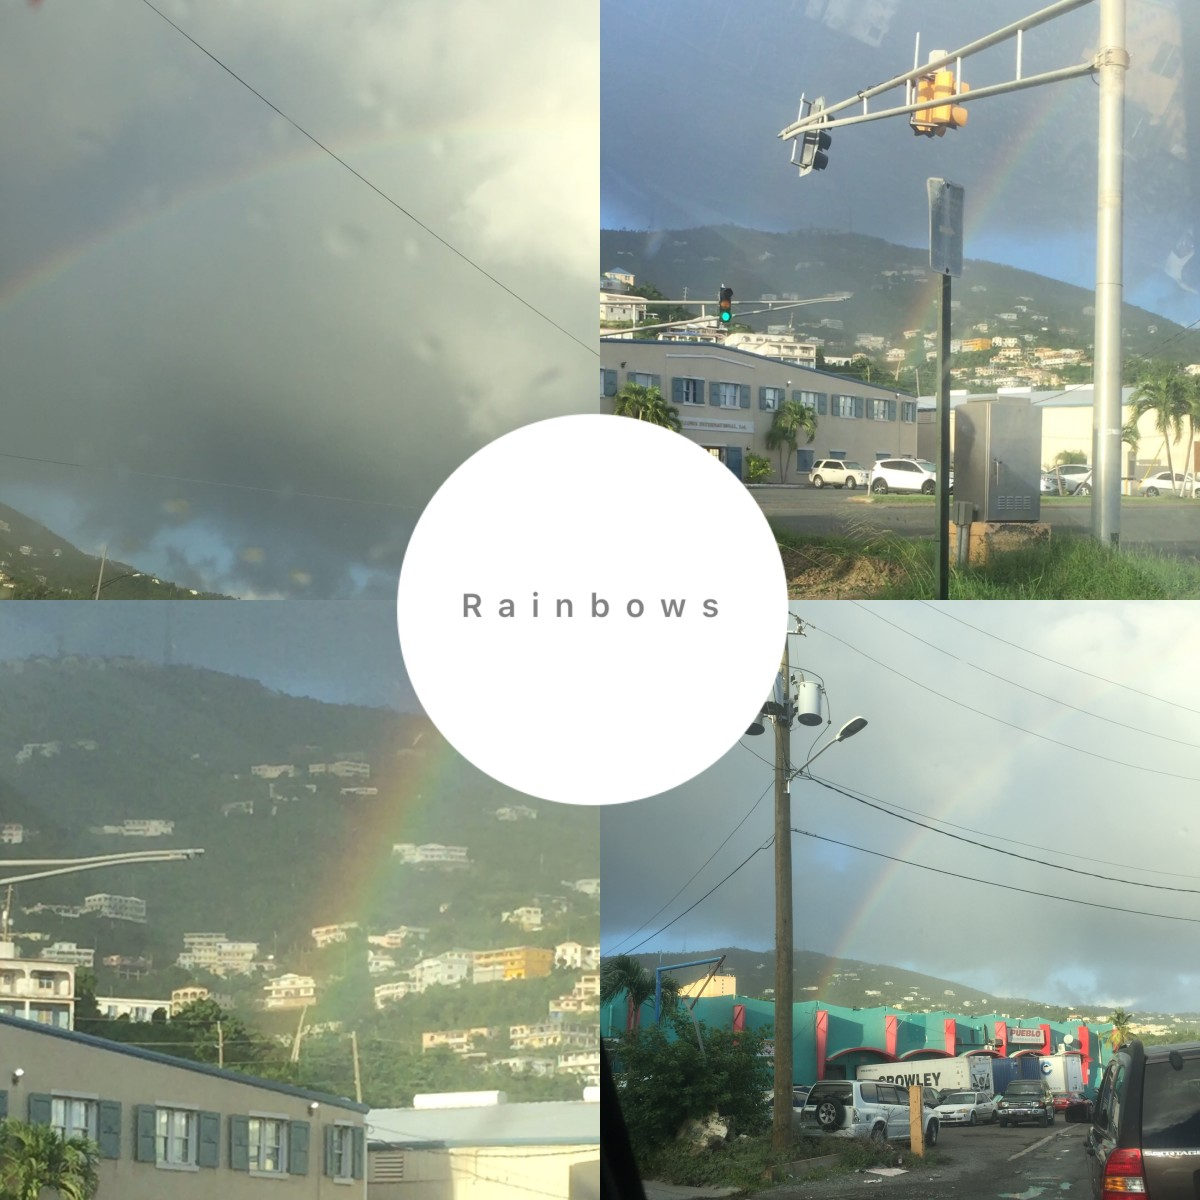 December 7, 2018 @ 4:57pm. Video Clip of rainbow driving on waterfront. I'm following a rainbow. The rainbow overlooked alot of businesses druing the spectrum. See video